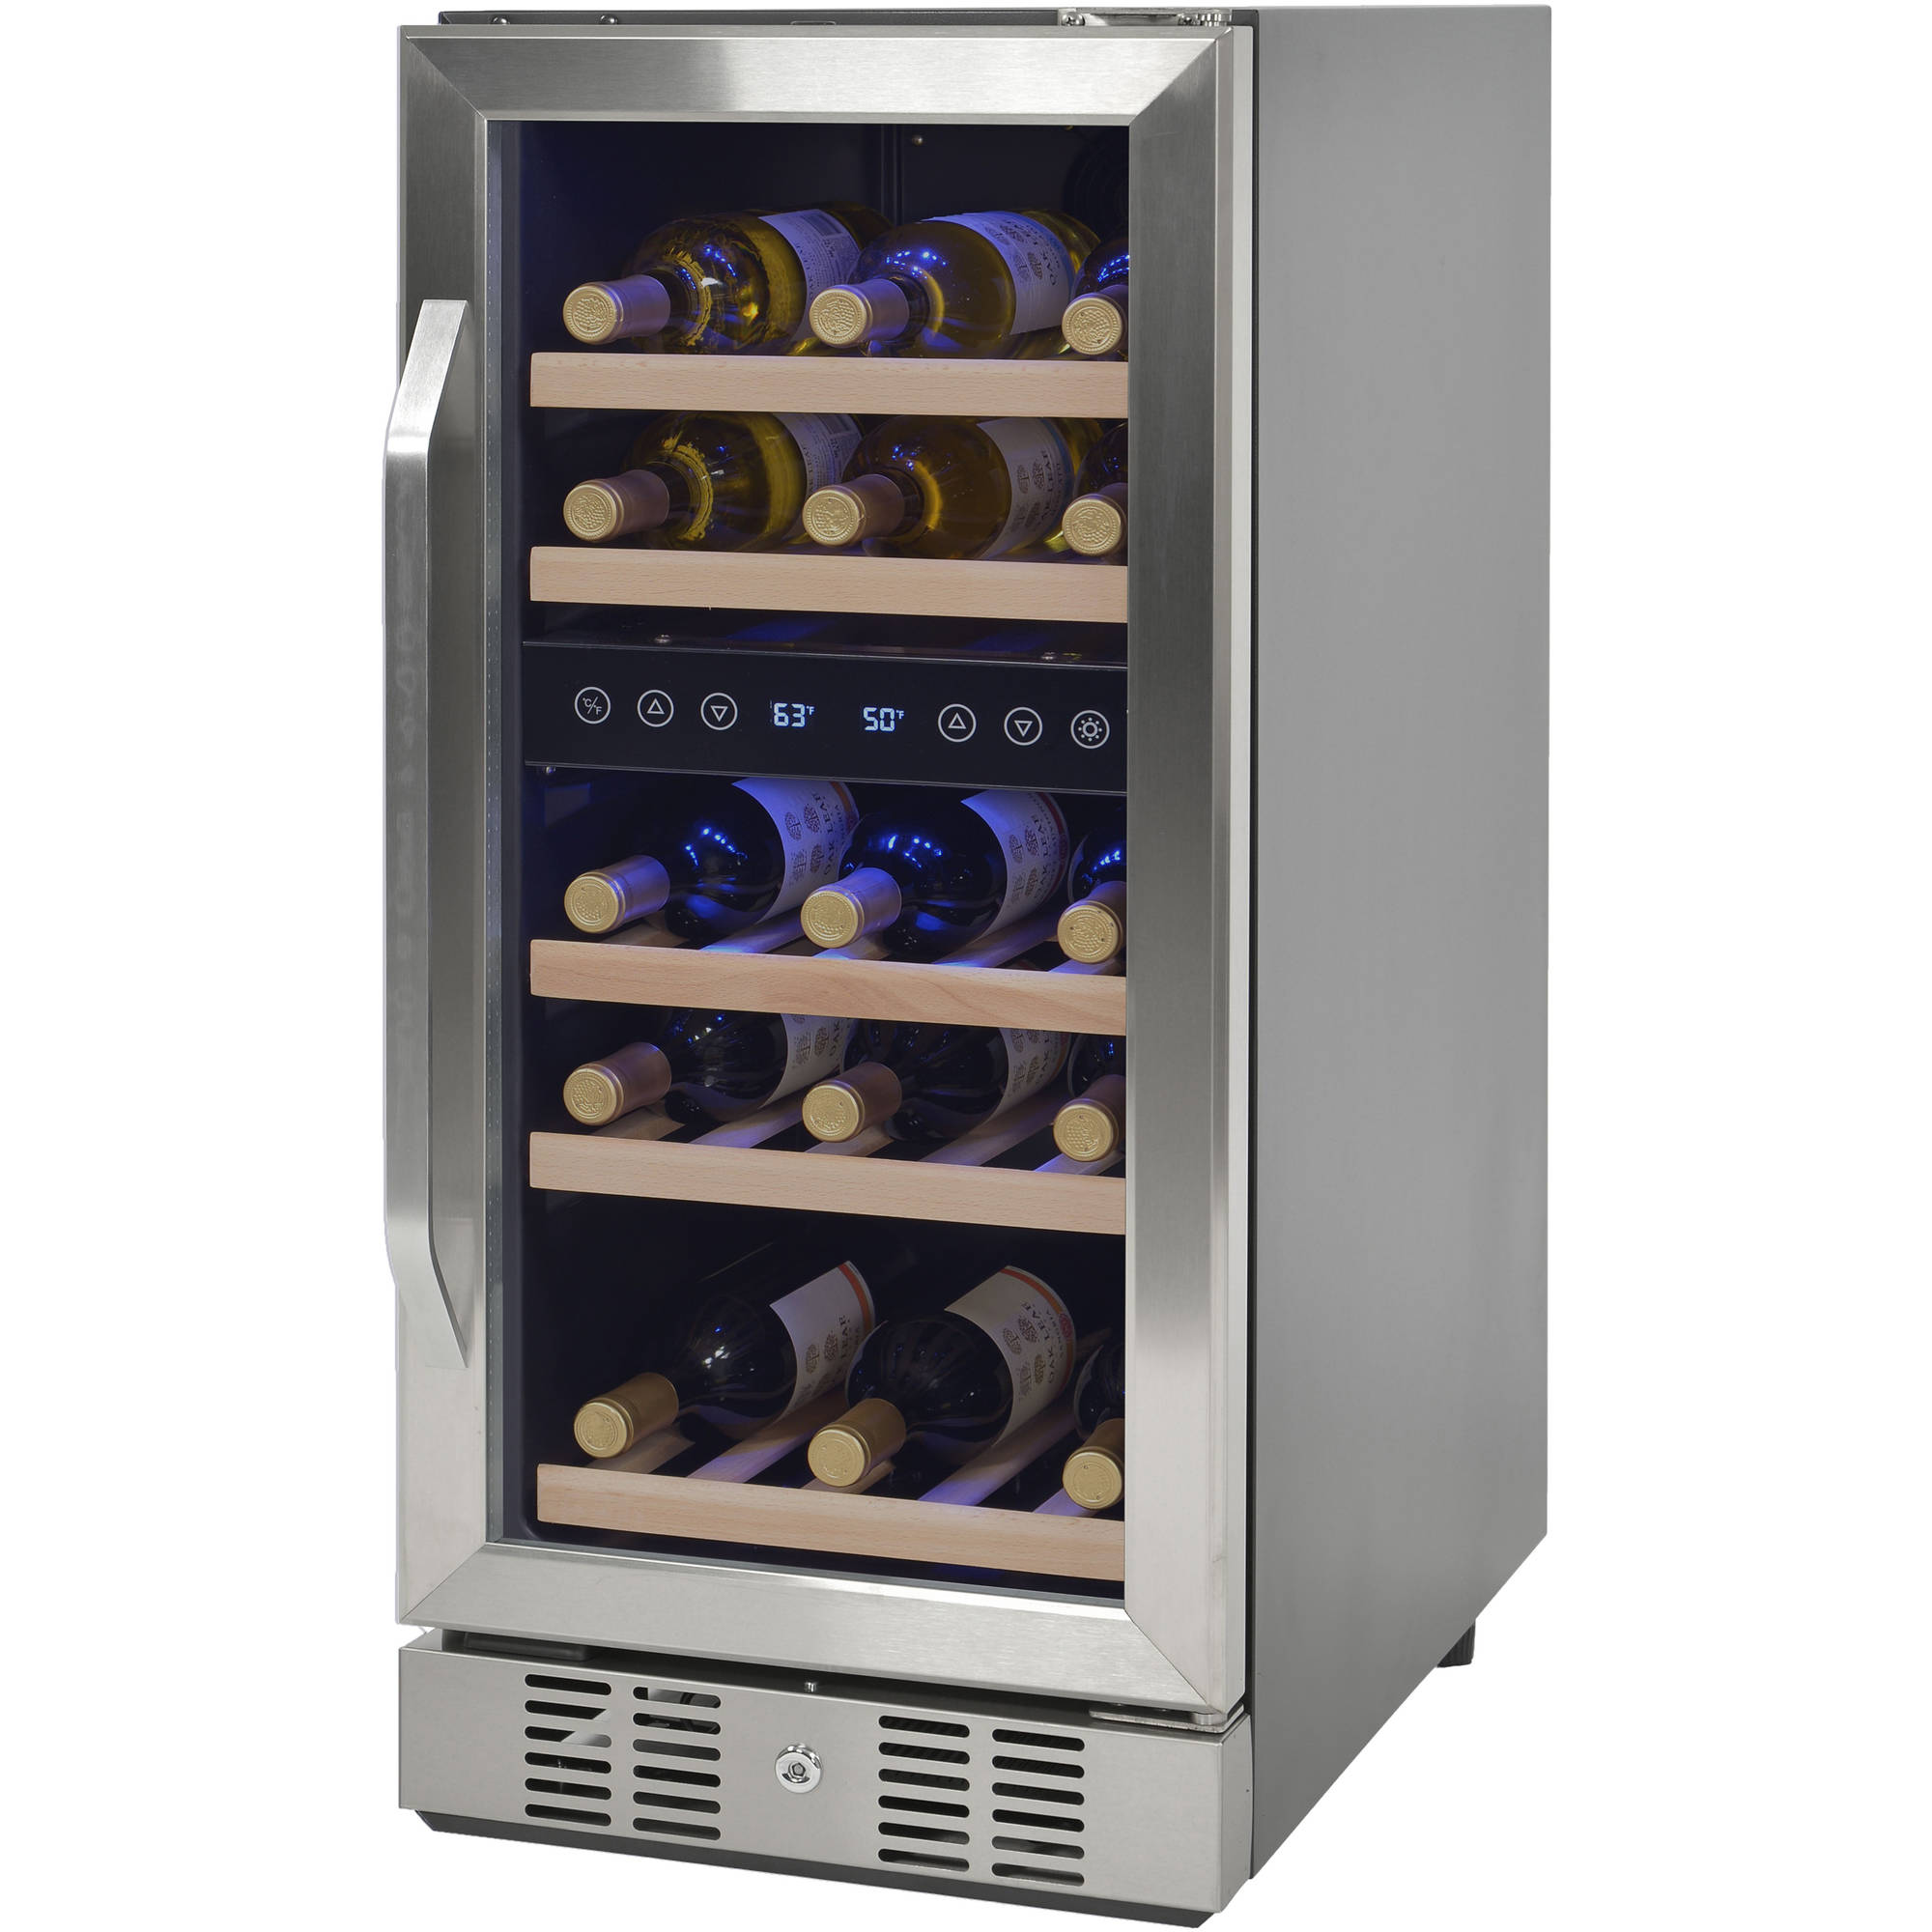 NewAir Compact 29 Bottle Wine Refrigerator, Stainless Steel